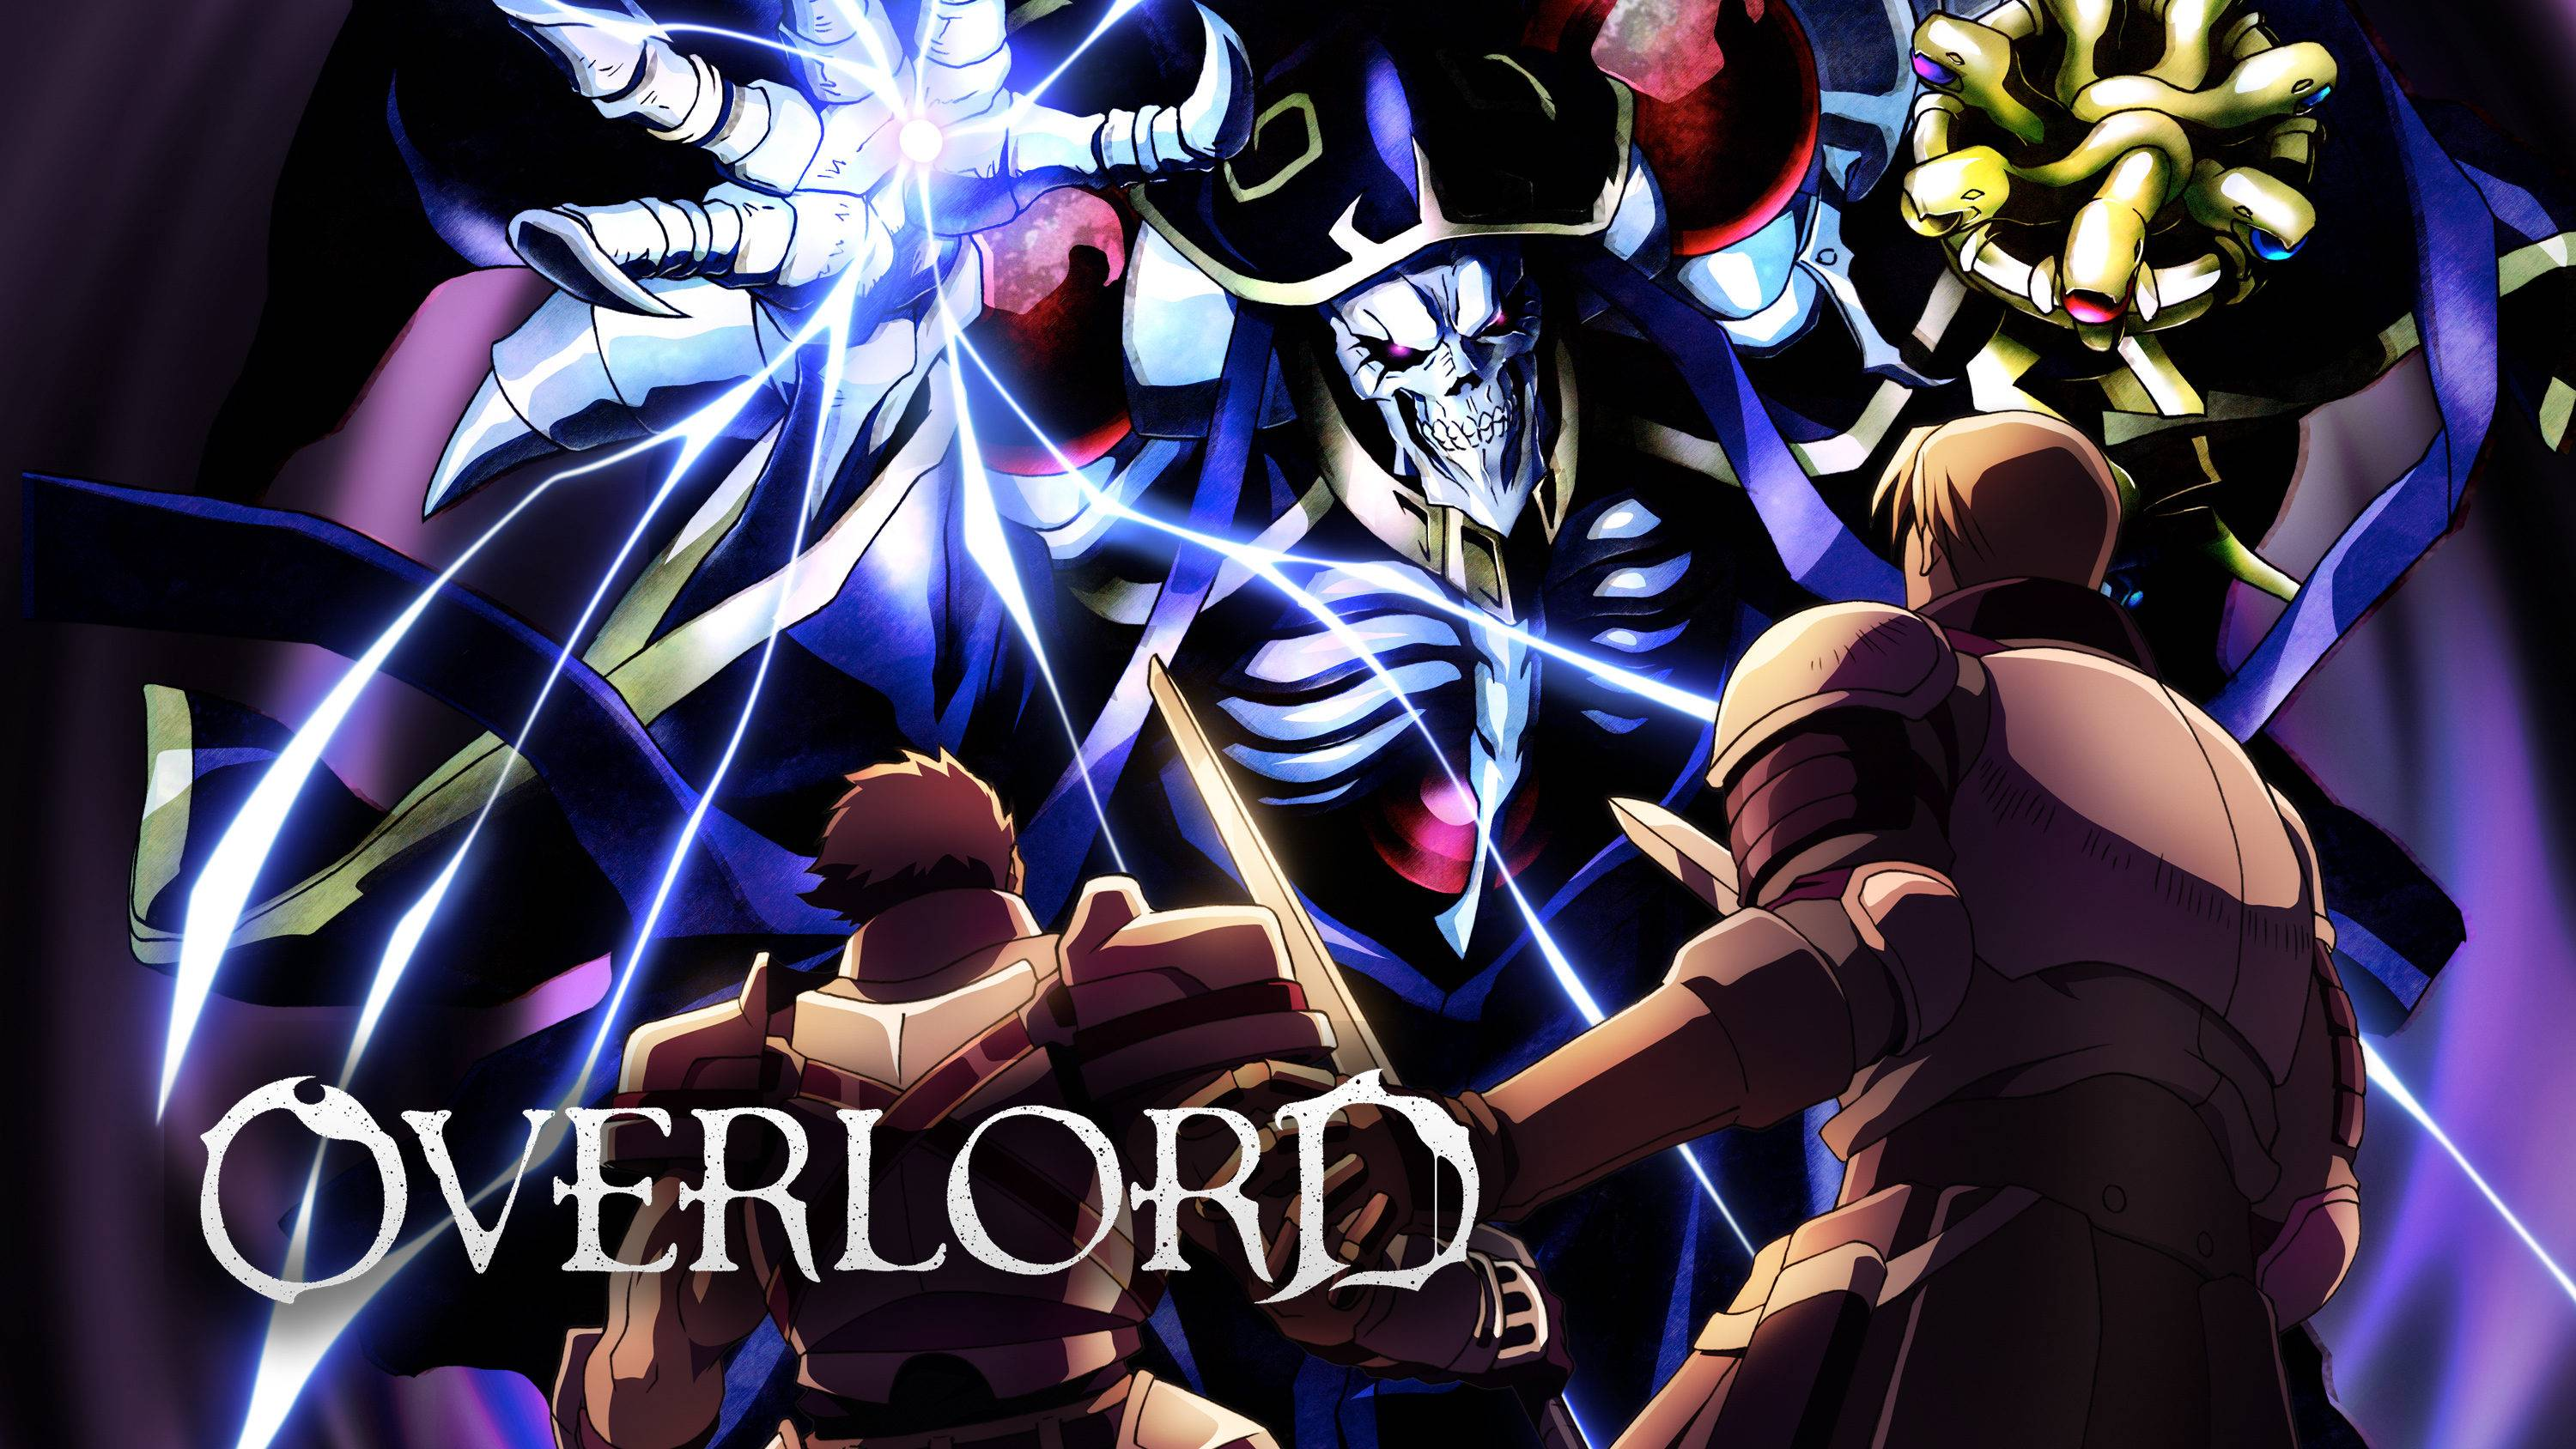 Overlord Ein Anime Fur RPG Fans